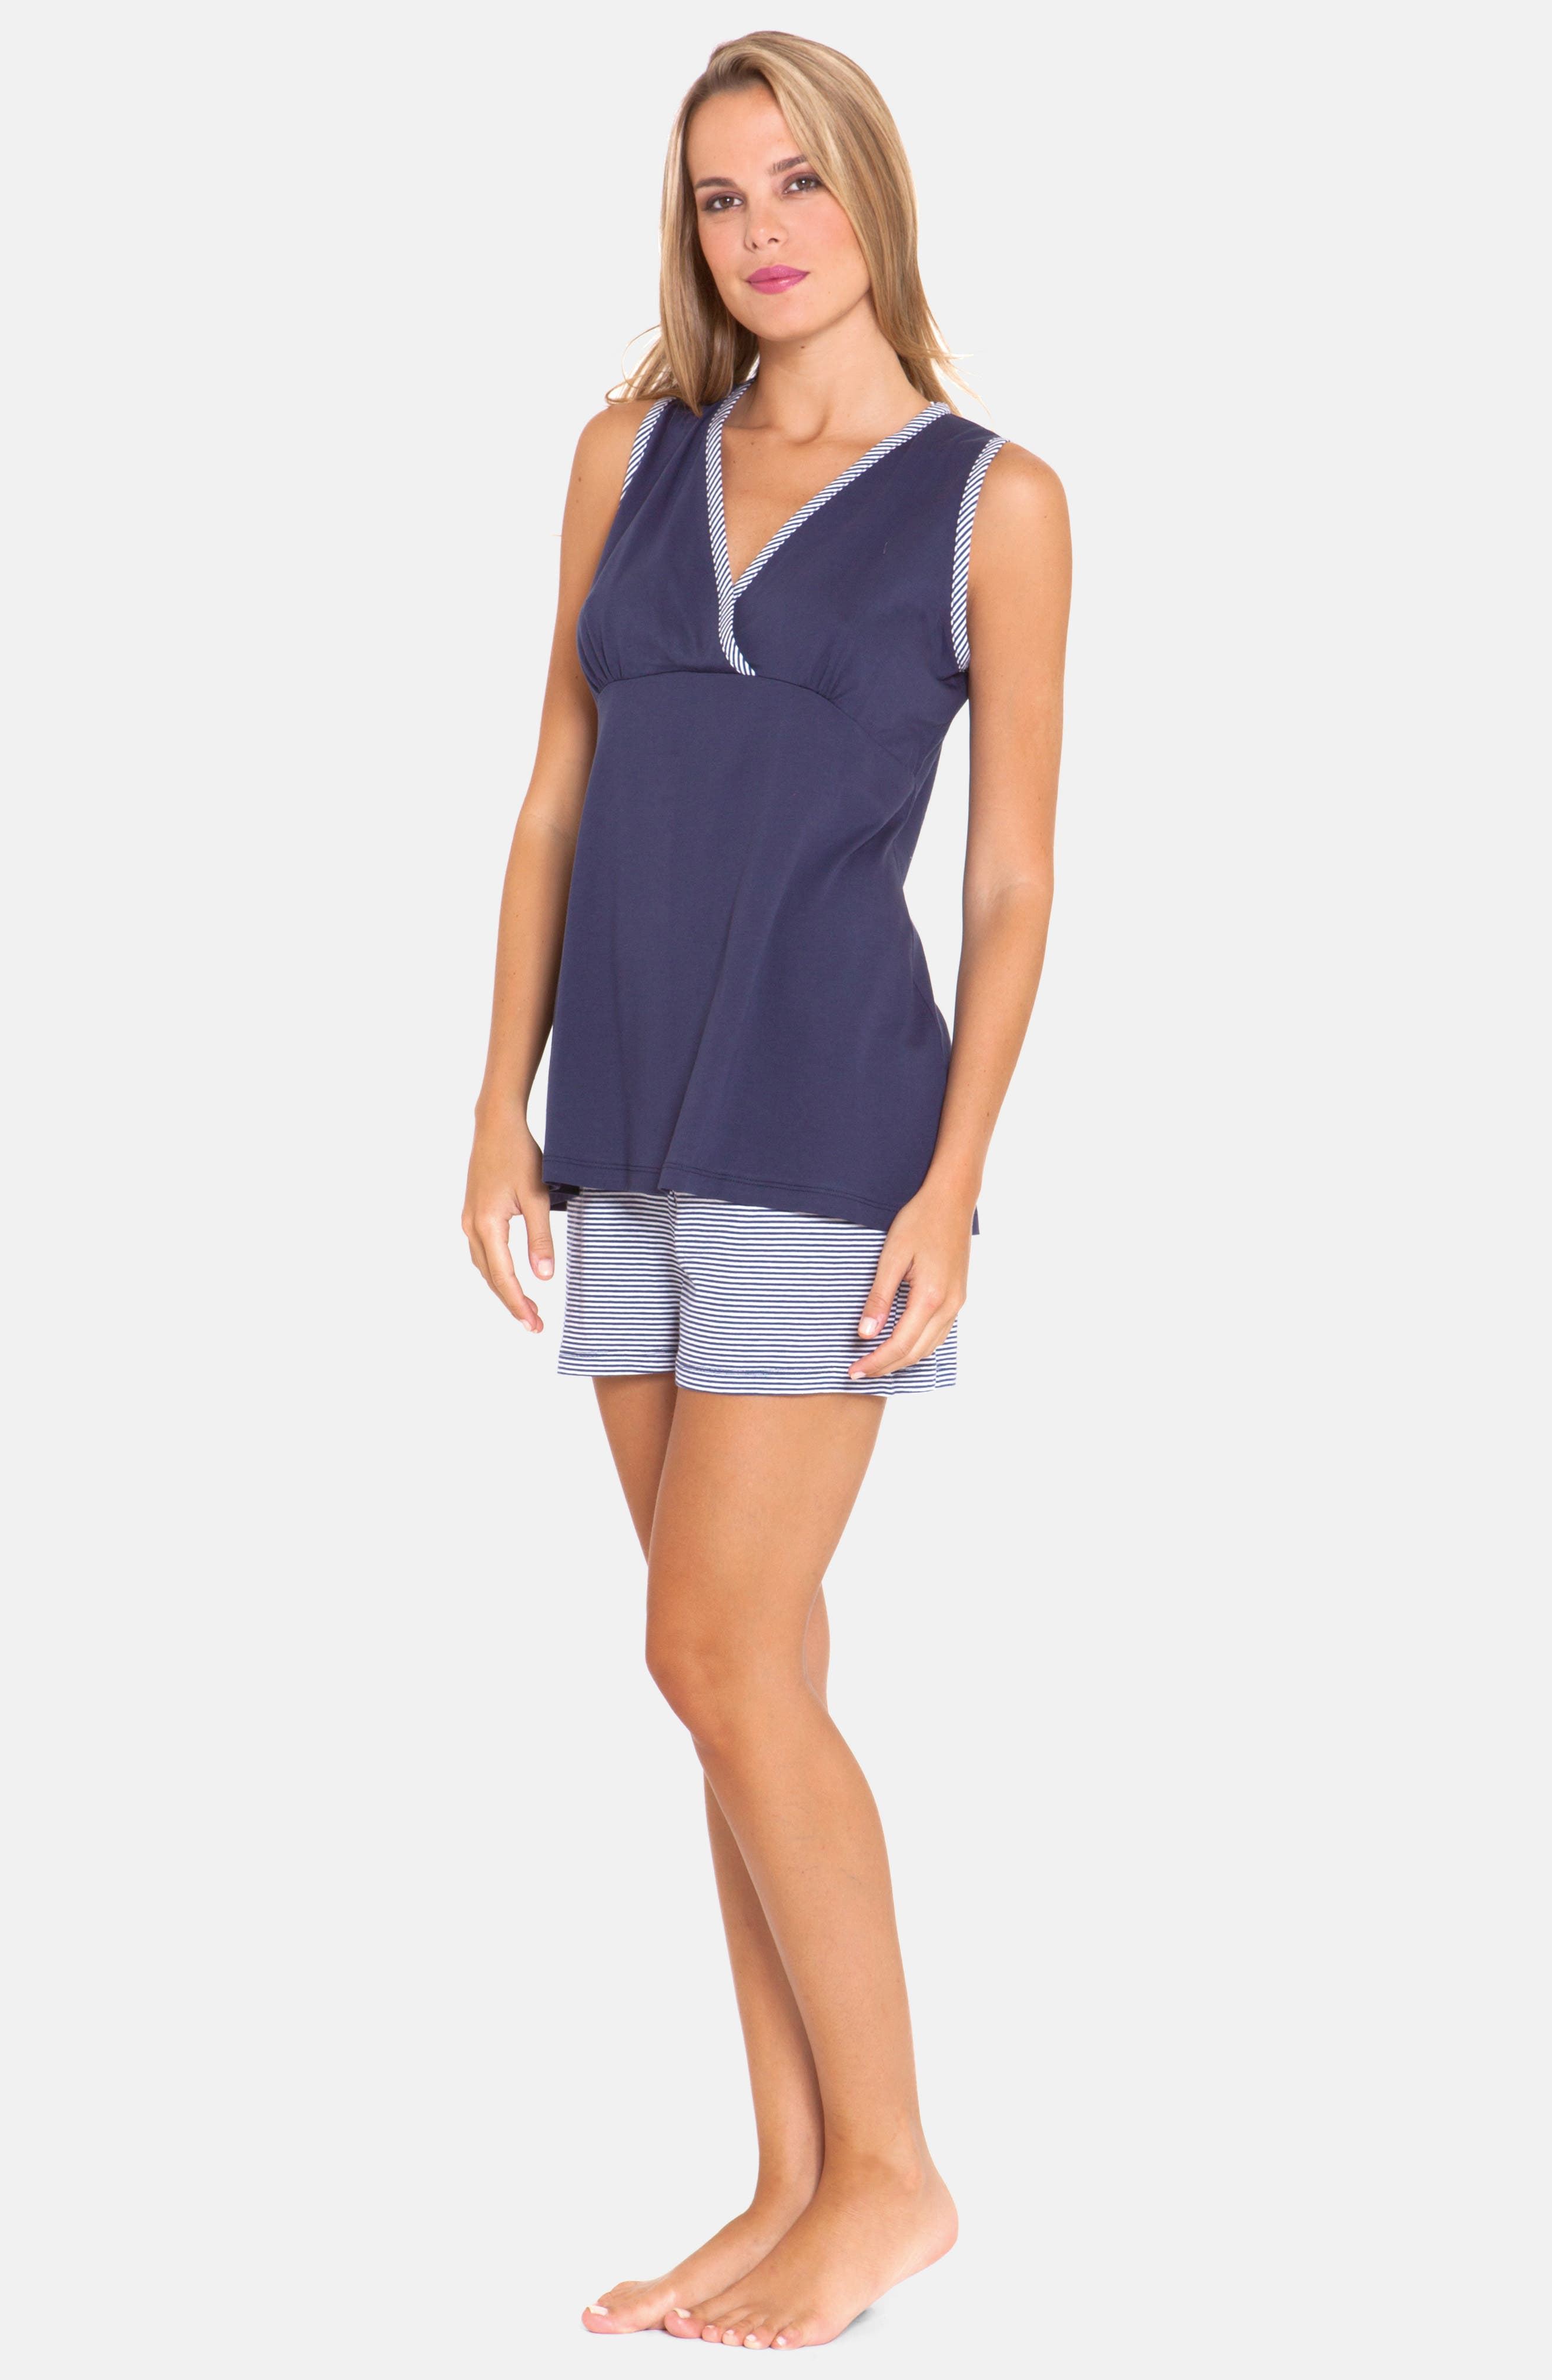 3-Piece Maternity Sleepwear Gift Set,                             Alternate thumbnail 3, color,                             BLUE